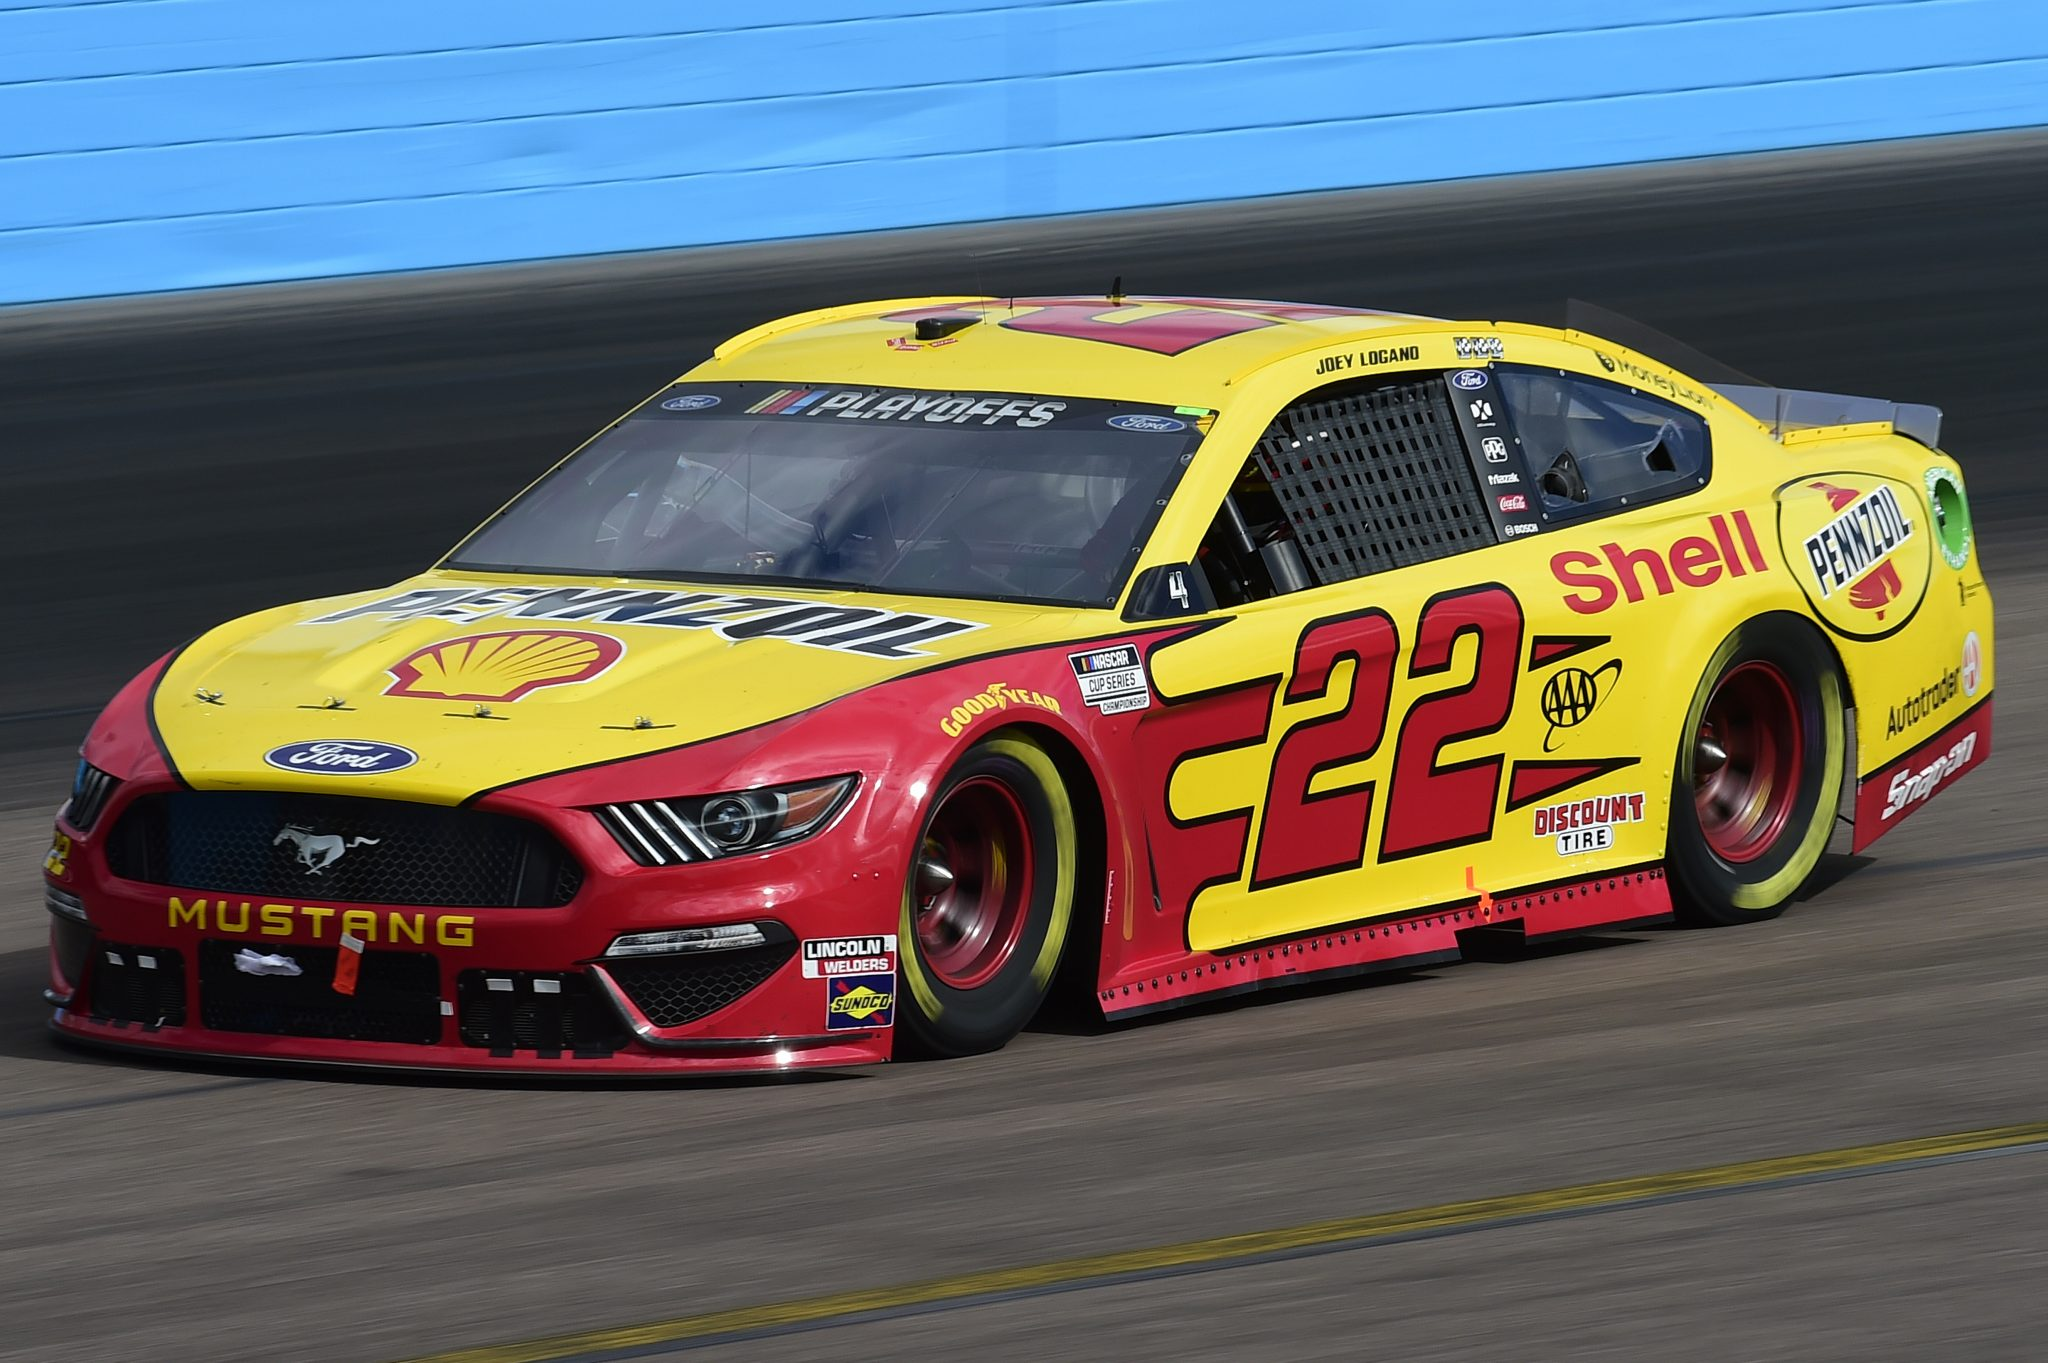 AVONDALE, ARIZONA - NOVEMBER 08: Joey Logano, driver of the #22 Shell Pennzoil Ford, drives during the NASCAR Cup Series Season Finale 500 at Phoenix Raceway on November 08, 2020 in Avondale, Arizona. (Photo by Jared C. Tilton/Getty Images) | Getty Images